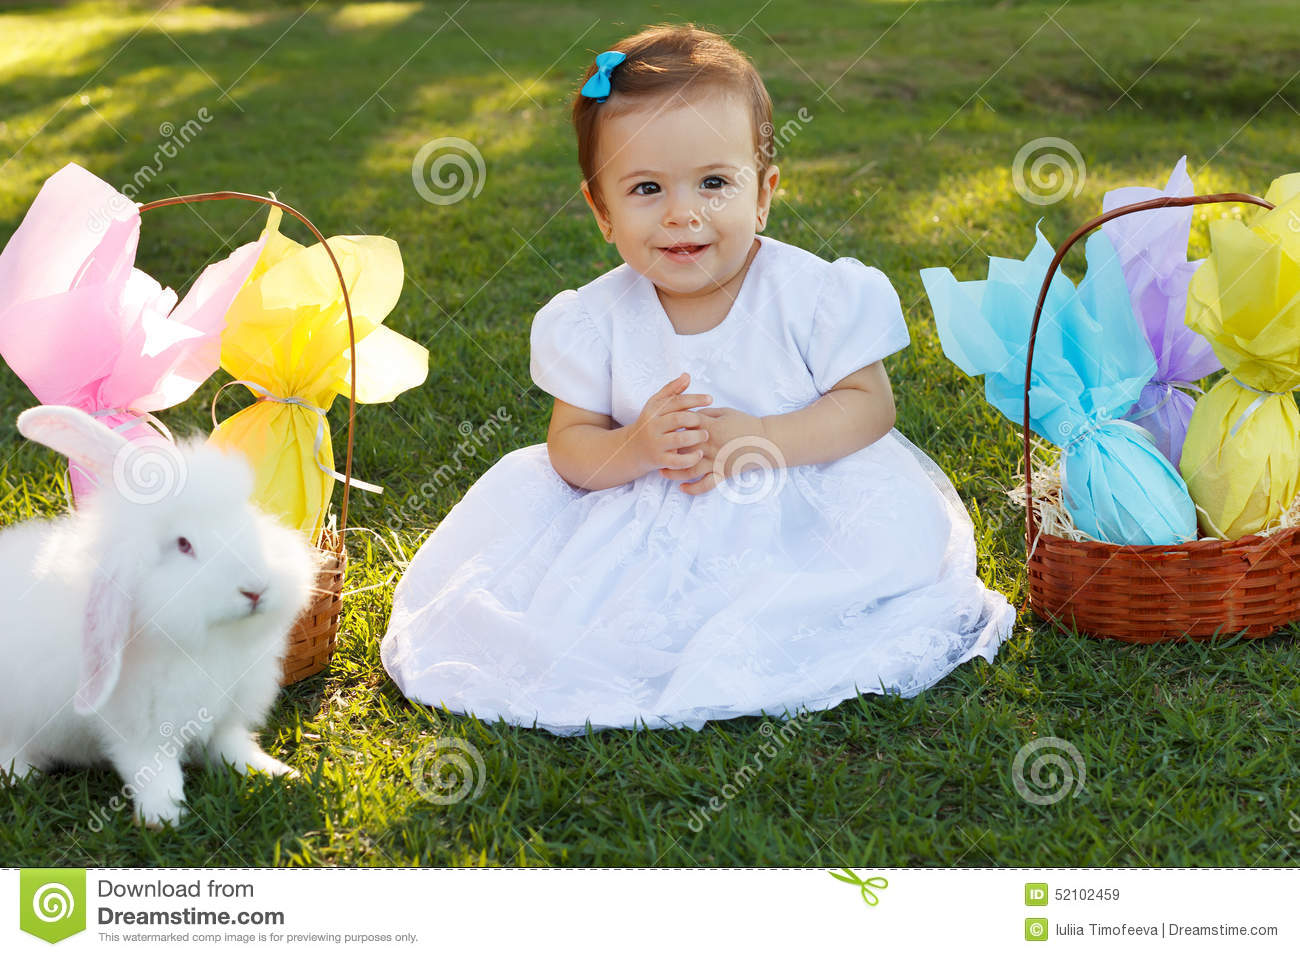 87082a9a2f2e Cute smiling baby girl in white dress with wicker basket with chocolate  eggs and white rabbit for Easter holiday in park on green grass.